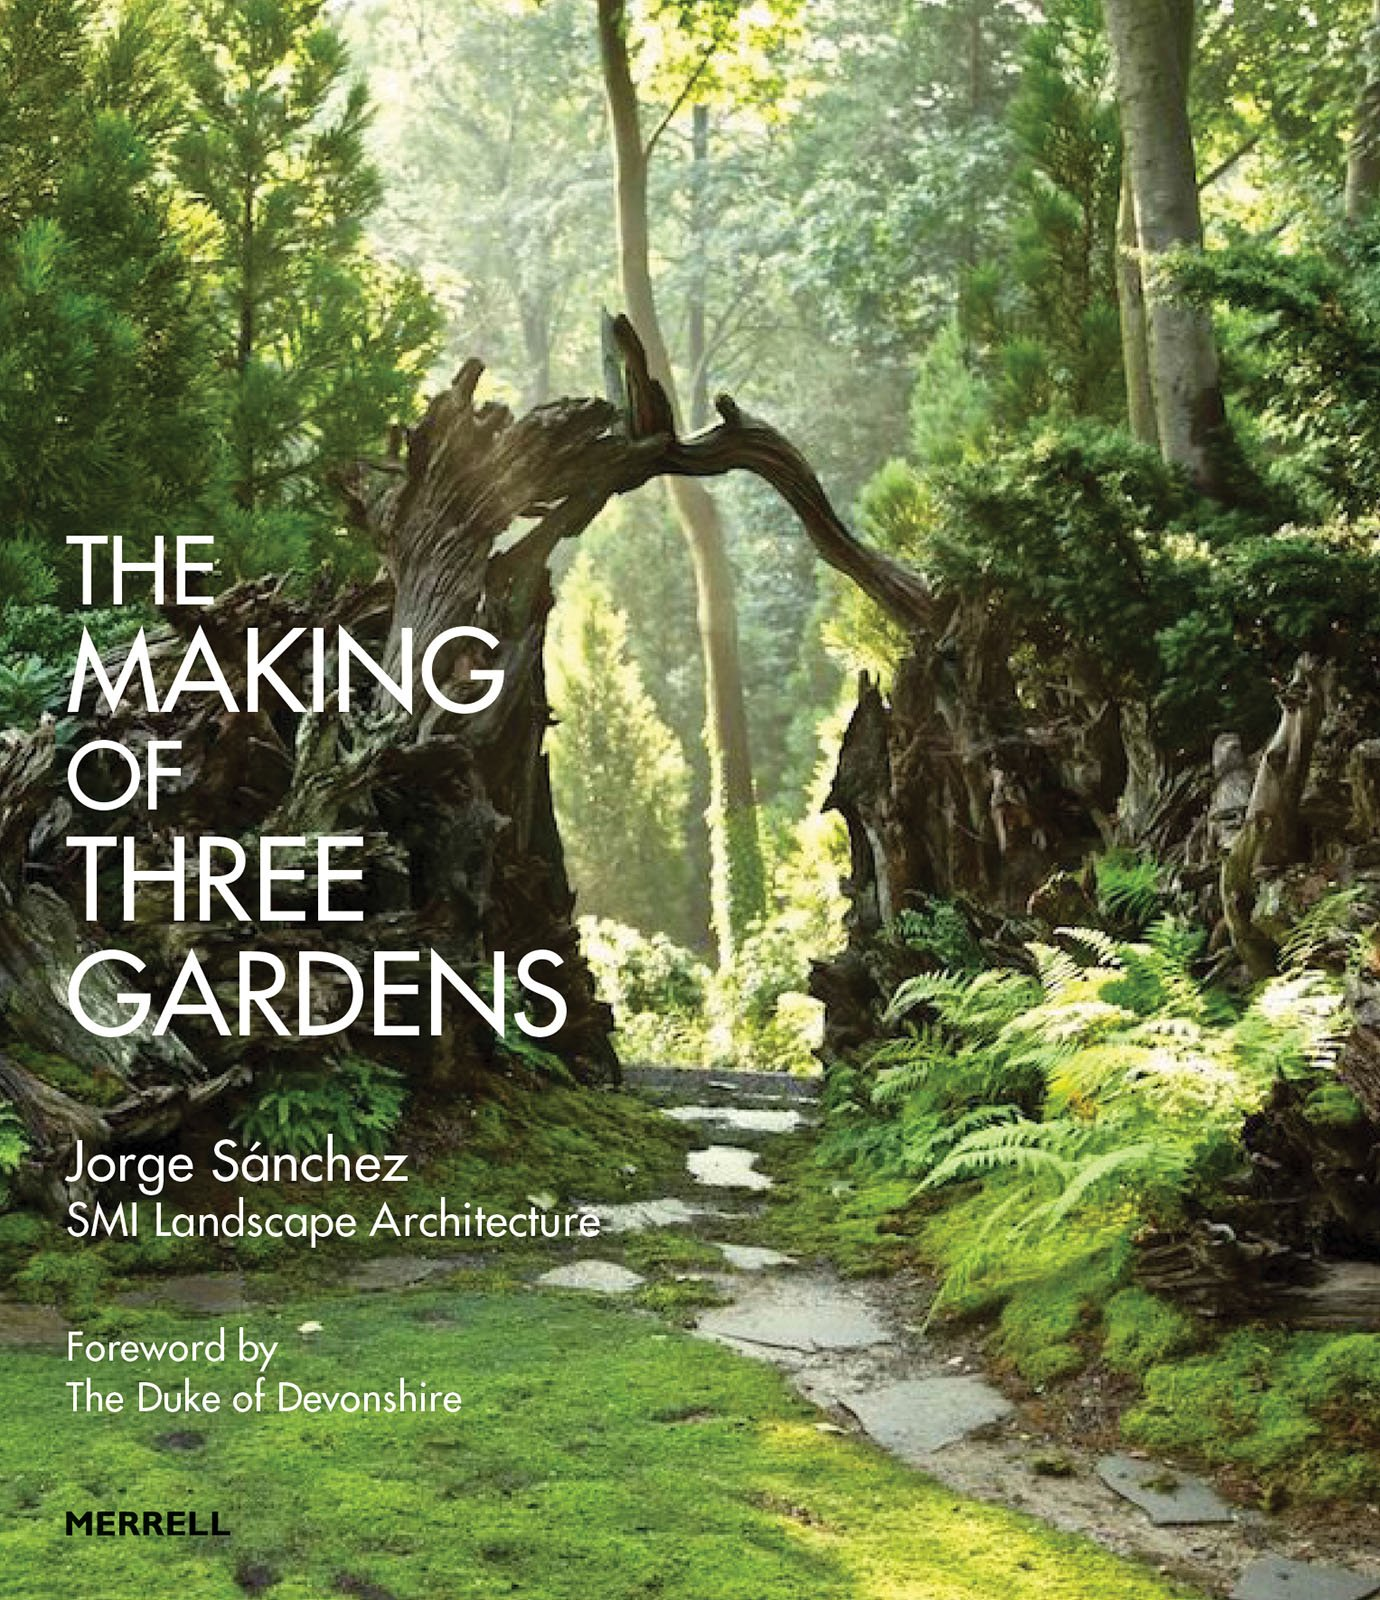 Landscape designer Jorge Sánchez created the Gibbes Museum's stunning Lenhardt Garden in 2016. Sánchez will share his design approach and process for three private garden projects featured in his new book,  The Making of Three Gardens , as well as insights about his work at the Gibbes. A reception and book signing will follow in the Lenhardt Garden.  $30 Members | $40 Non-Members | $20 Student or Faculty with valid ID  Presented in partnership with   The Garden Conservancy